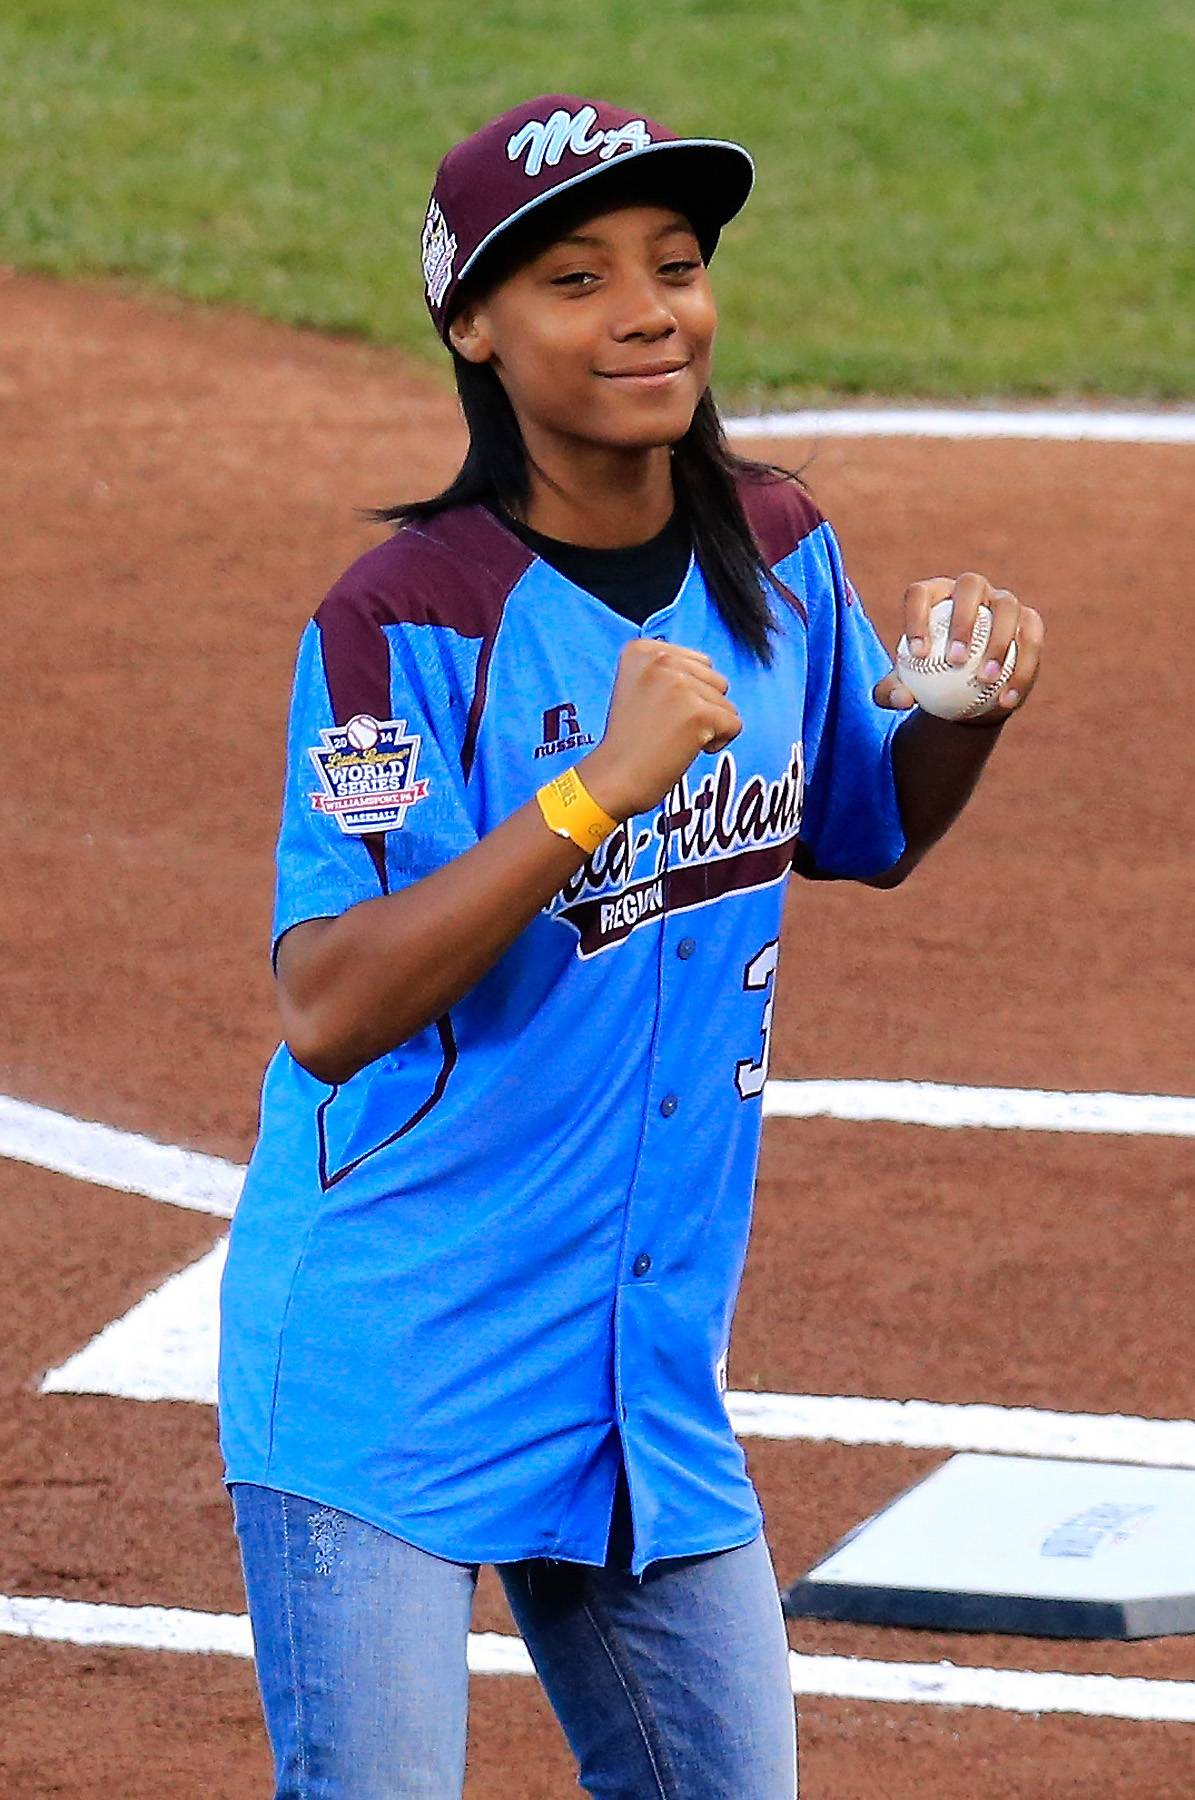 Mo'Ne Davis, Baseball Prodigy - Little League Baseball pitcher Mo'ne Davis threw the ceremonial first pitch before Game Four of the 2014 World Series at AT&T Park, and she did an amazing job. Speaking of amazing, she shot a commercial with Chevy, directed by Spike Lee,about how cool it is to throw like a girl.  (Photo: Rob Carr/Getty Images)